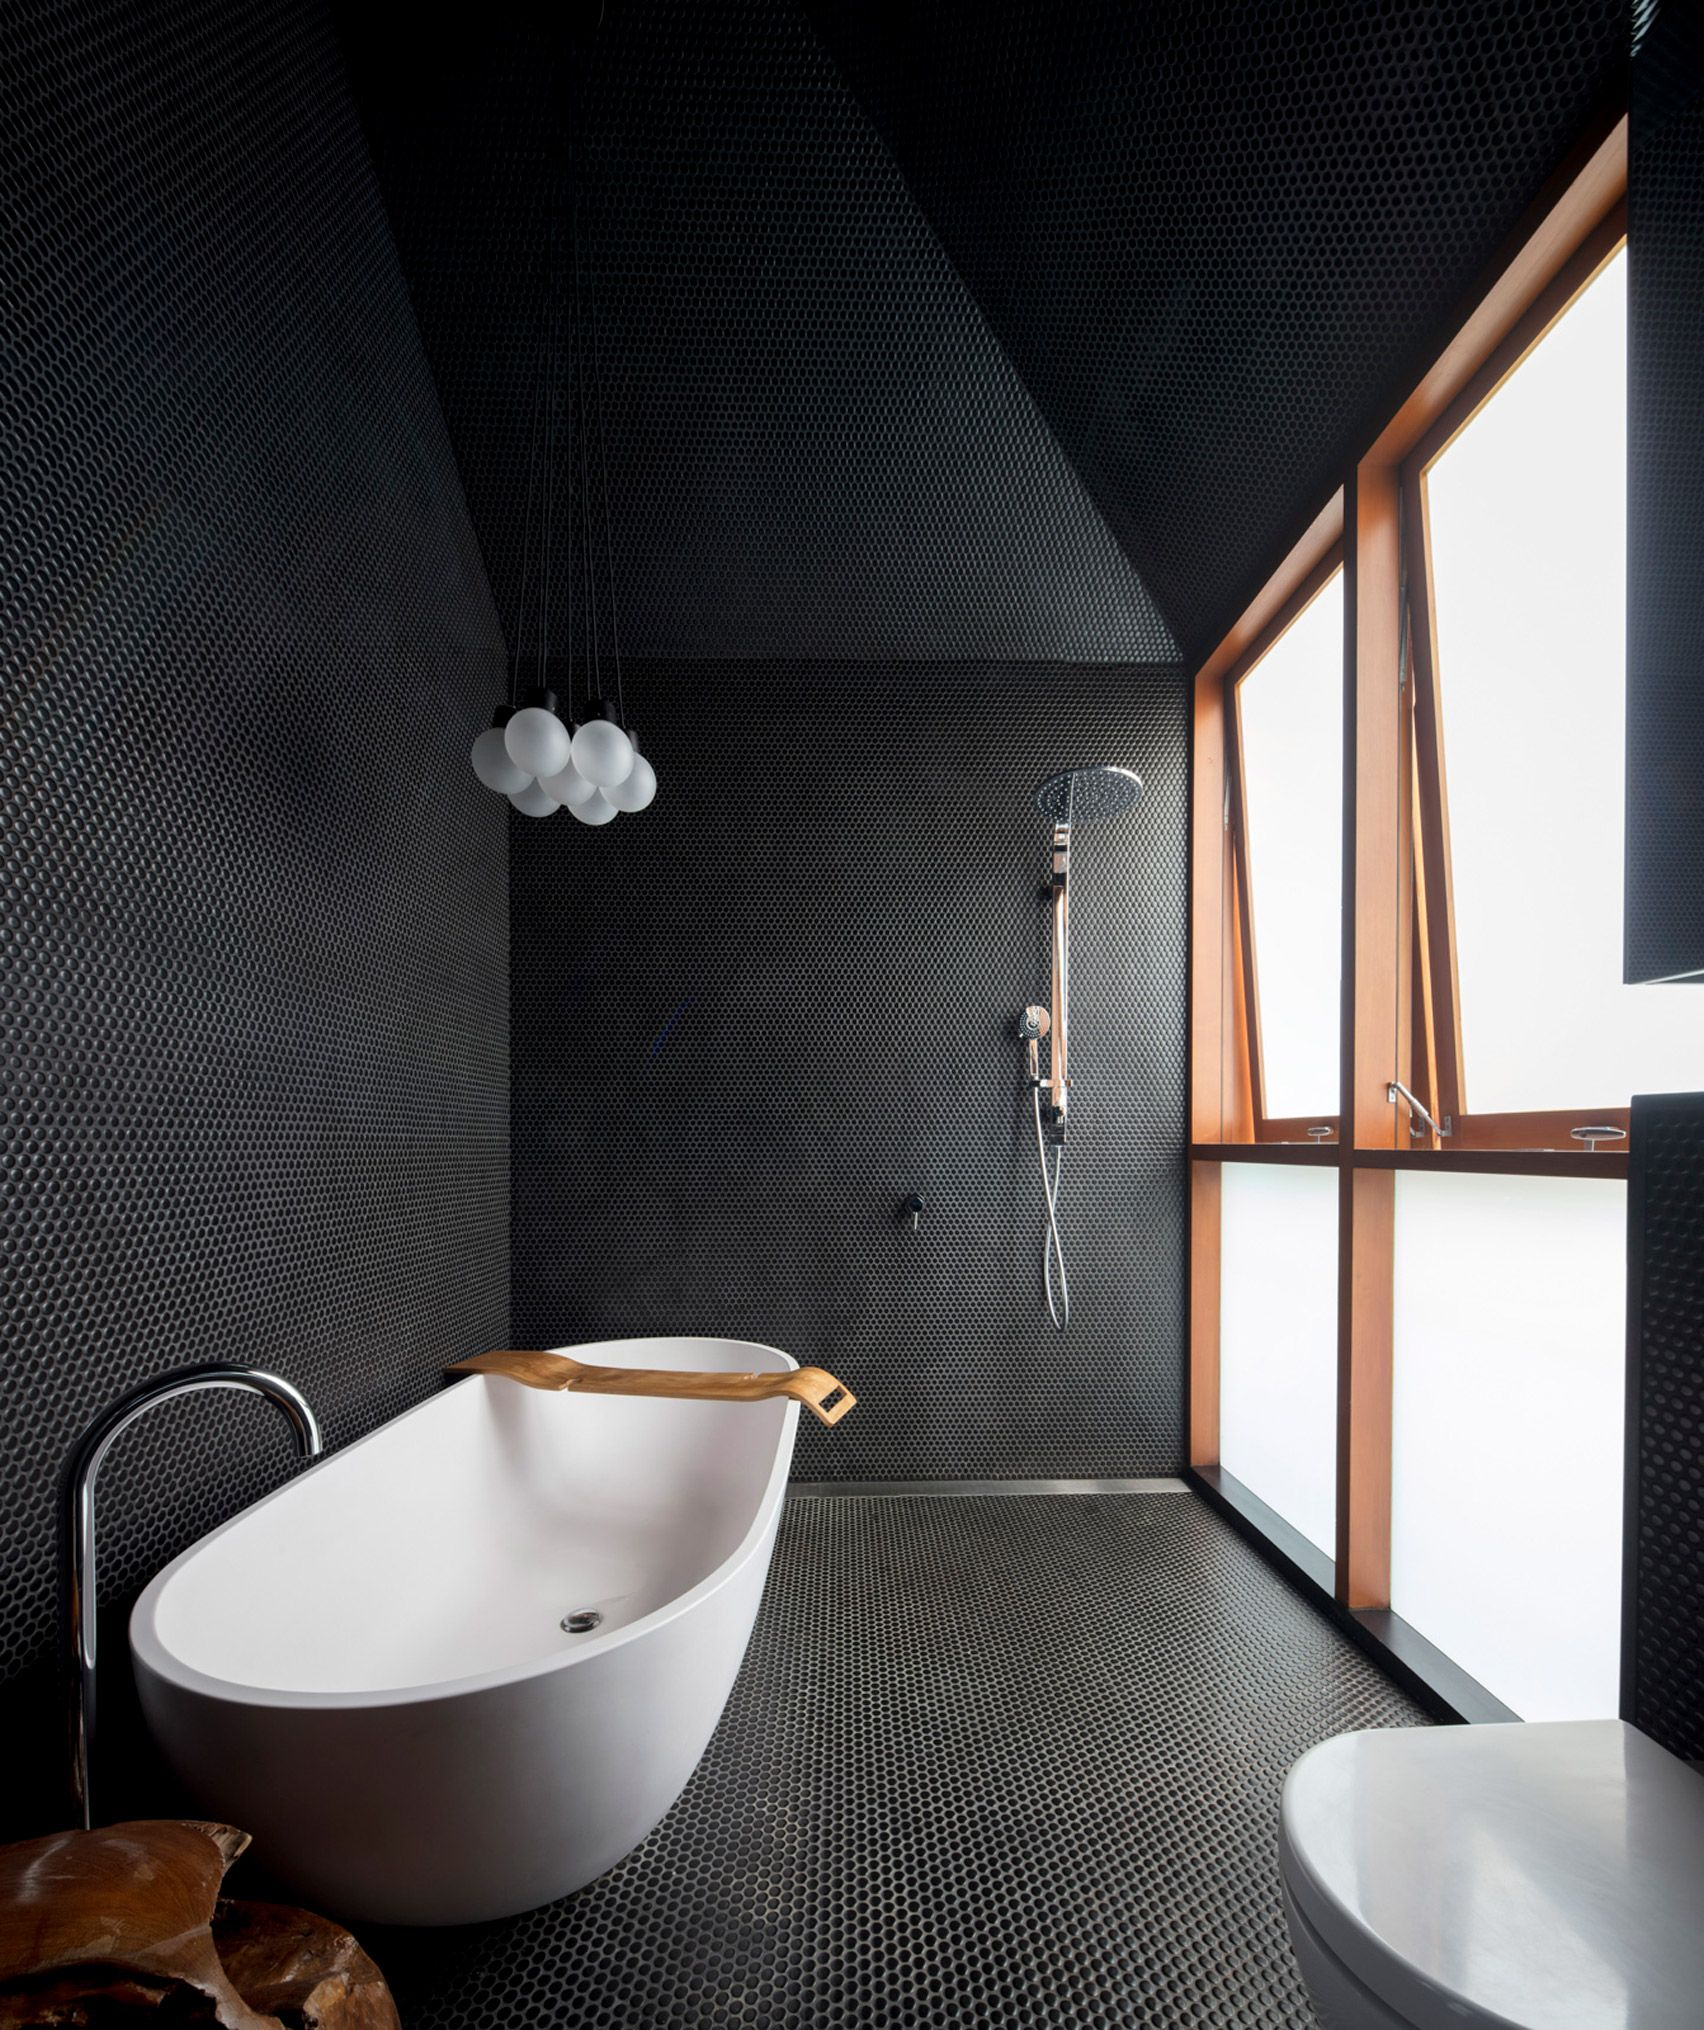 Black Bubbled Walls Feature In The Bathroom Which Has An Asymmetric